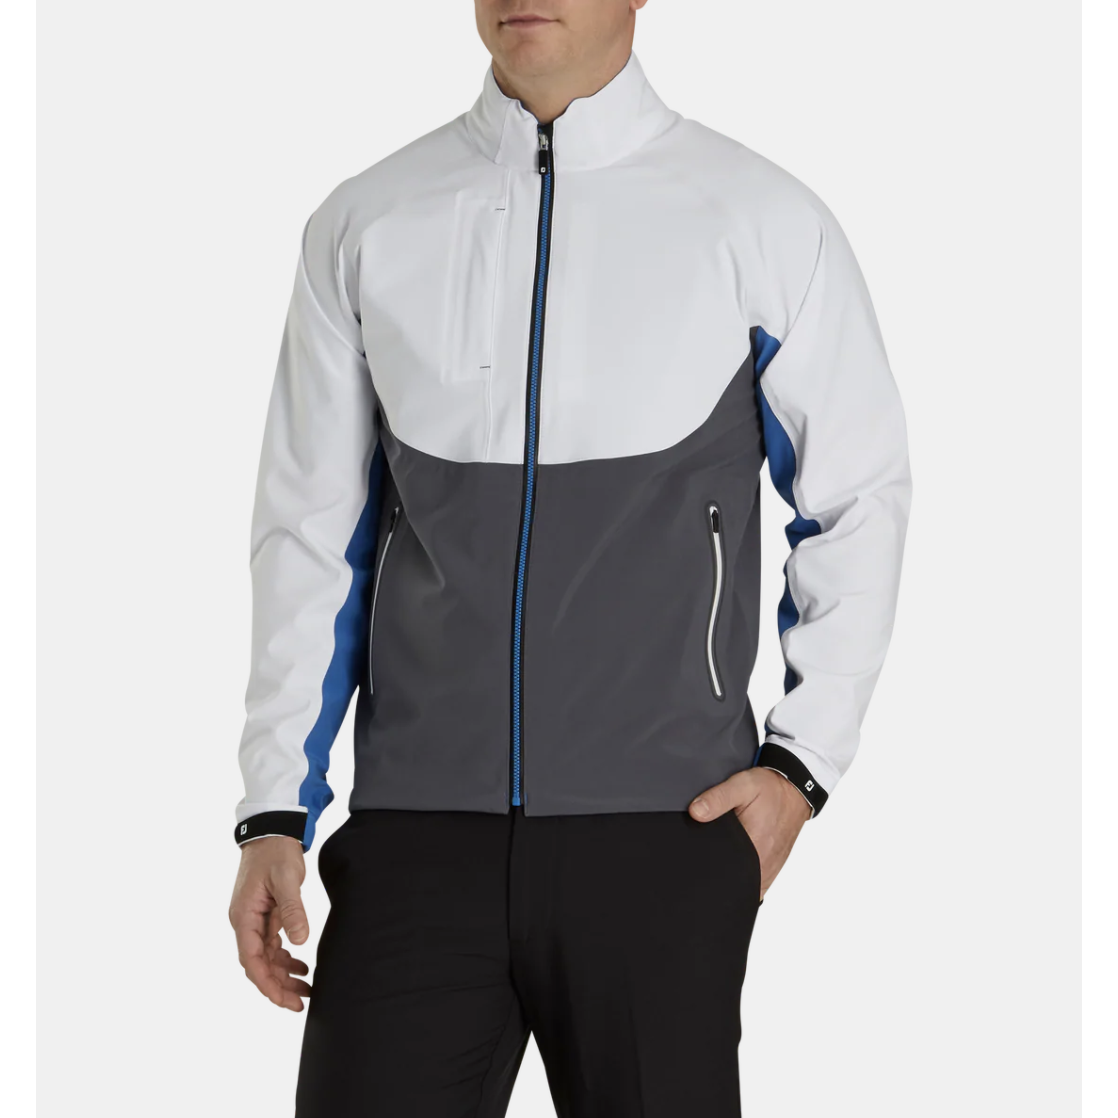 FJ DryJoys Tour LTS Jacket - Men's